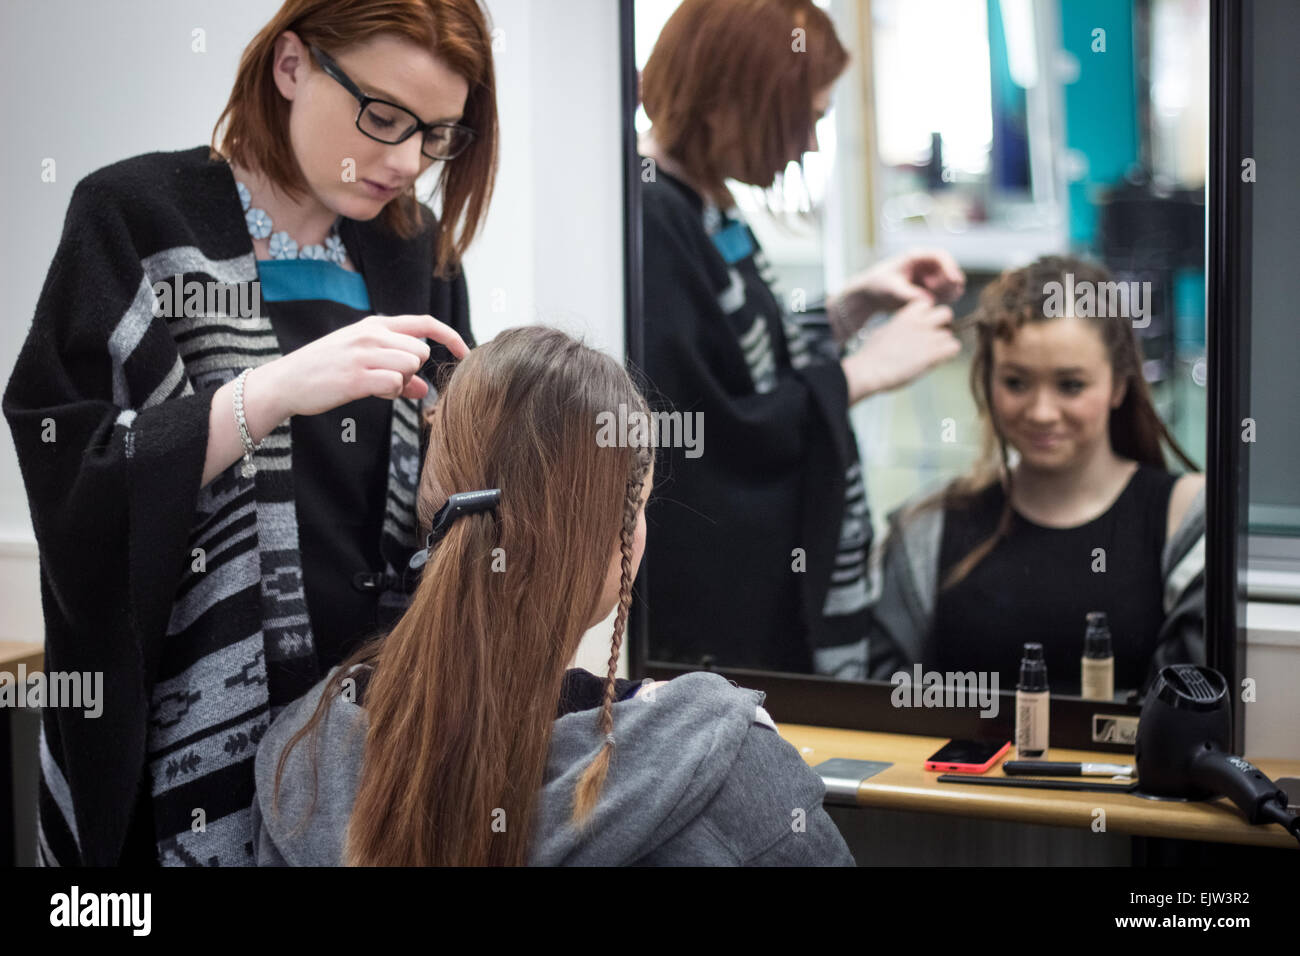 Female hairdresser in glasses braiding a model's hair for a fashion showcase both in the reflection of a mirror - Stock Image